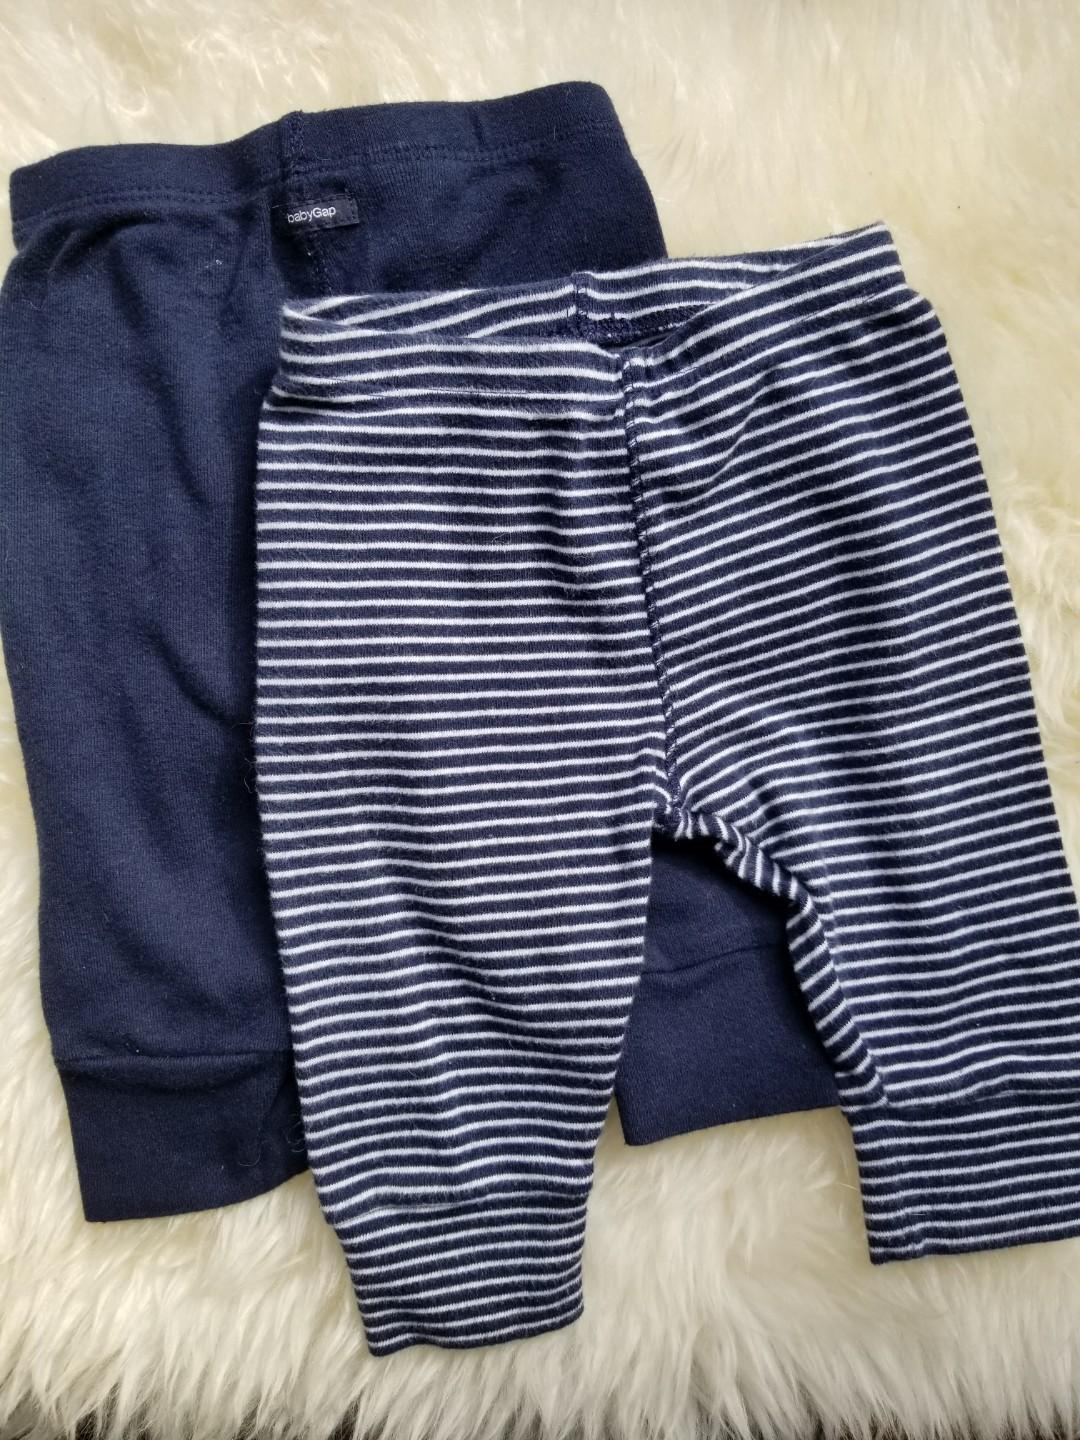 Baby Gap favourite pants. New. No tags. Size 3-6mths. We purchased new for $29. PU gerrard and main for $9 or $10 yorkville for both pairs or $5 each.